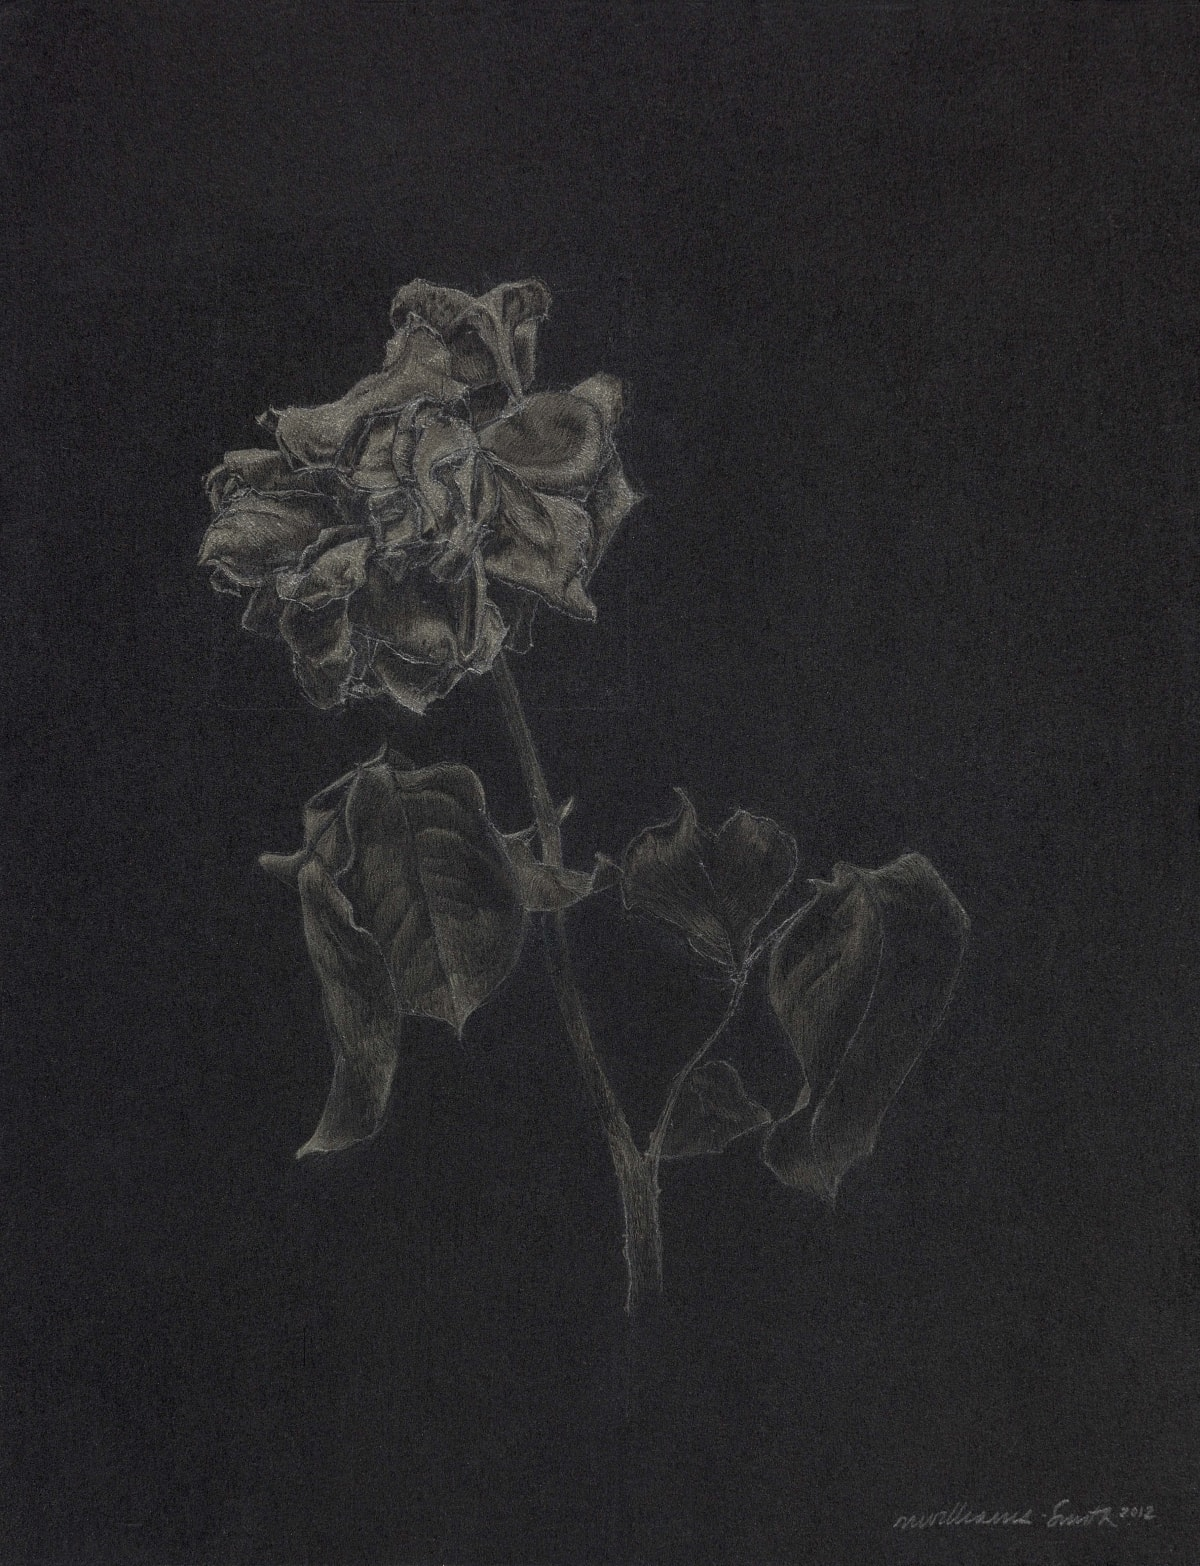 Marjorie Williams-Smith Glimmer, 2012 Silverpoint on Black Acrylic Gesso 9 1/4 x 7 3/16